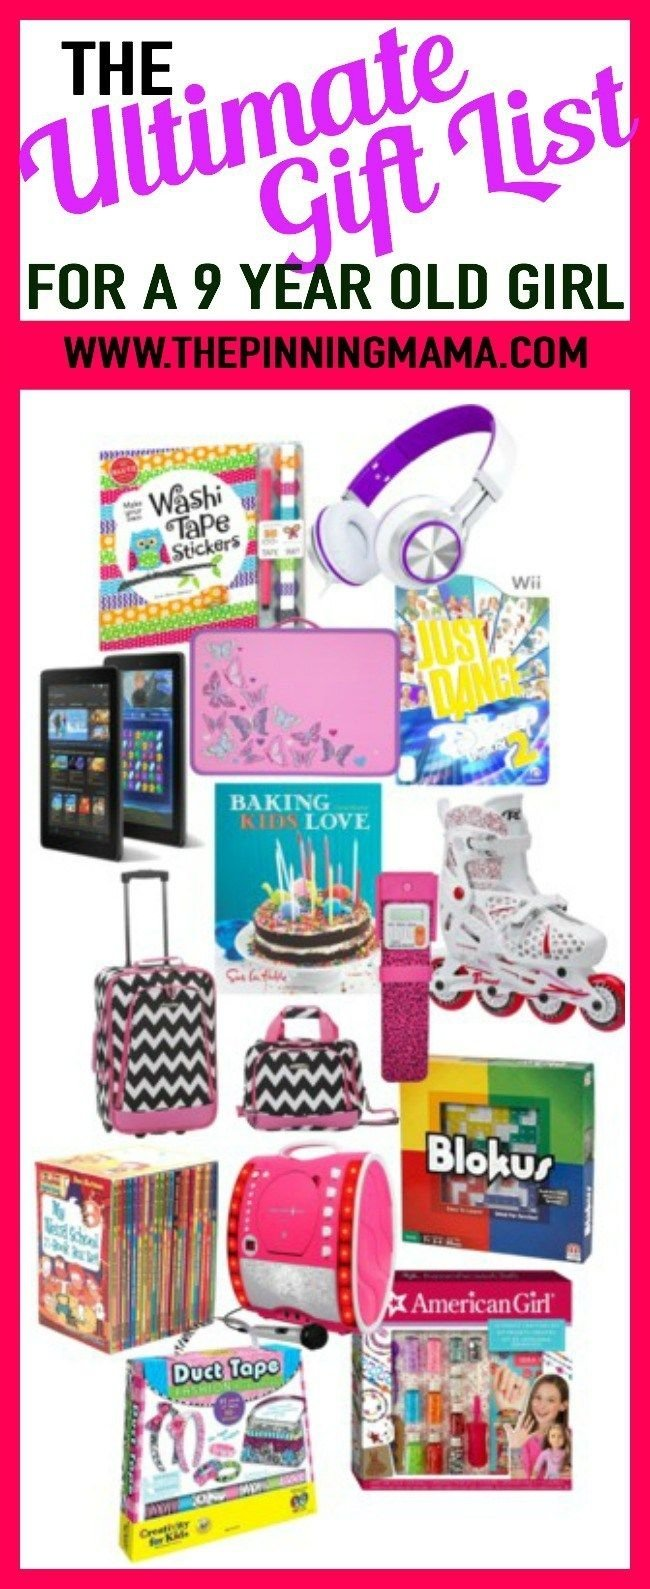 Imágenes de Christmas Gifts Ideas For 6 Year Old Boy